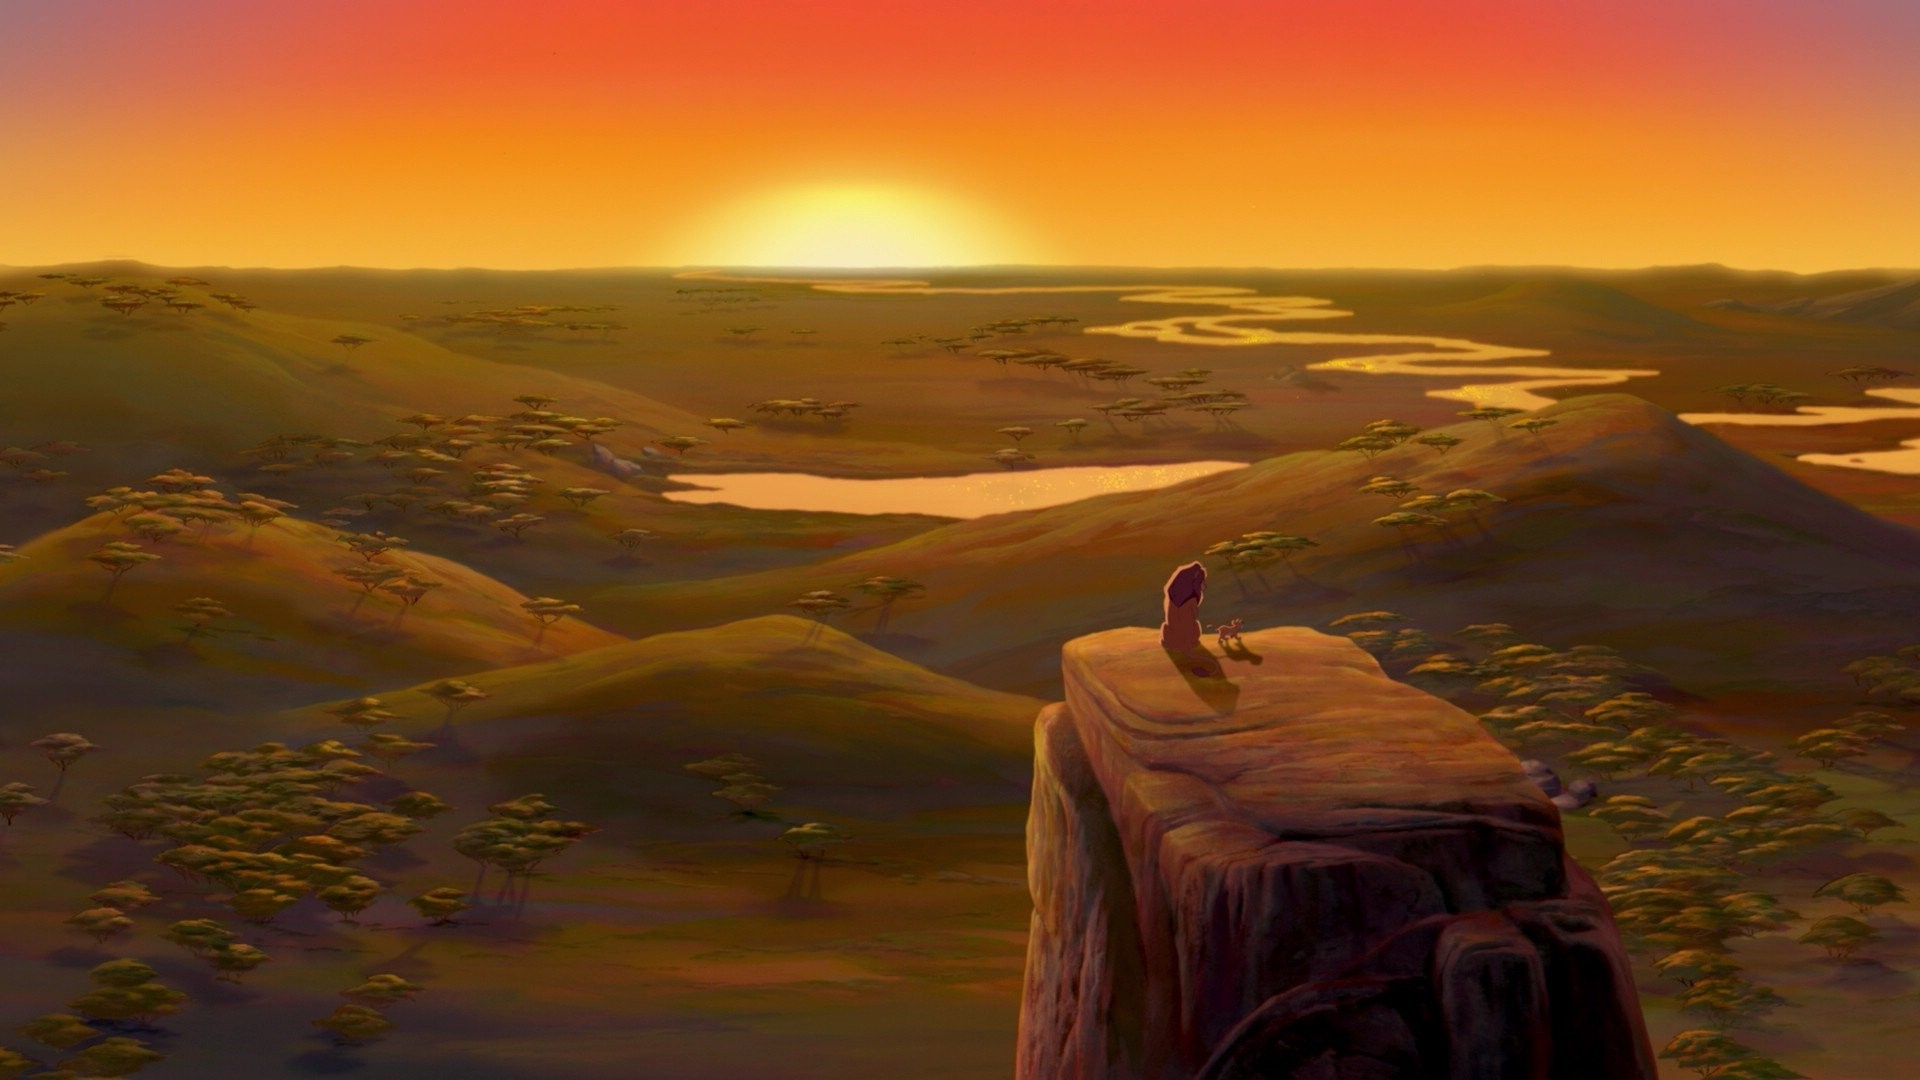 Lion King Background Download Free Stunning Hd Backgrounds For